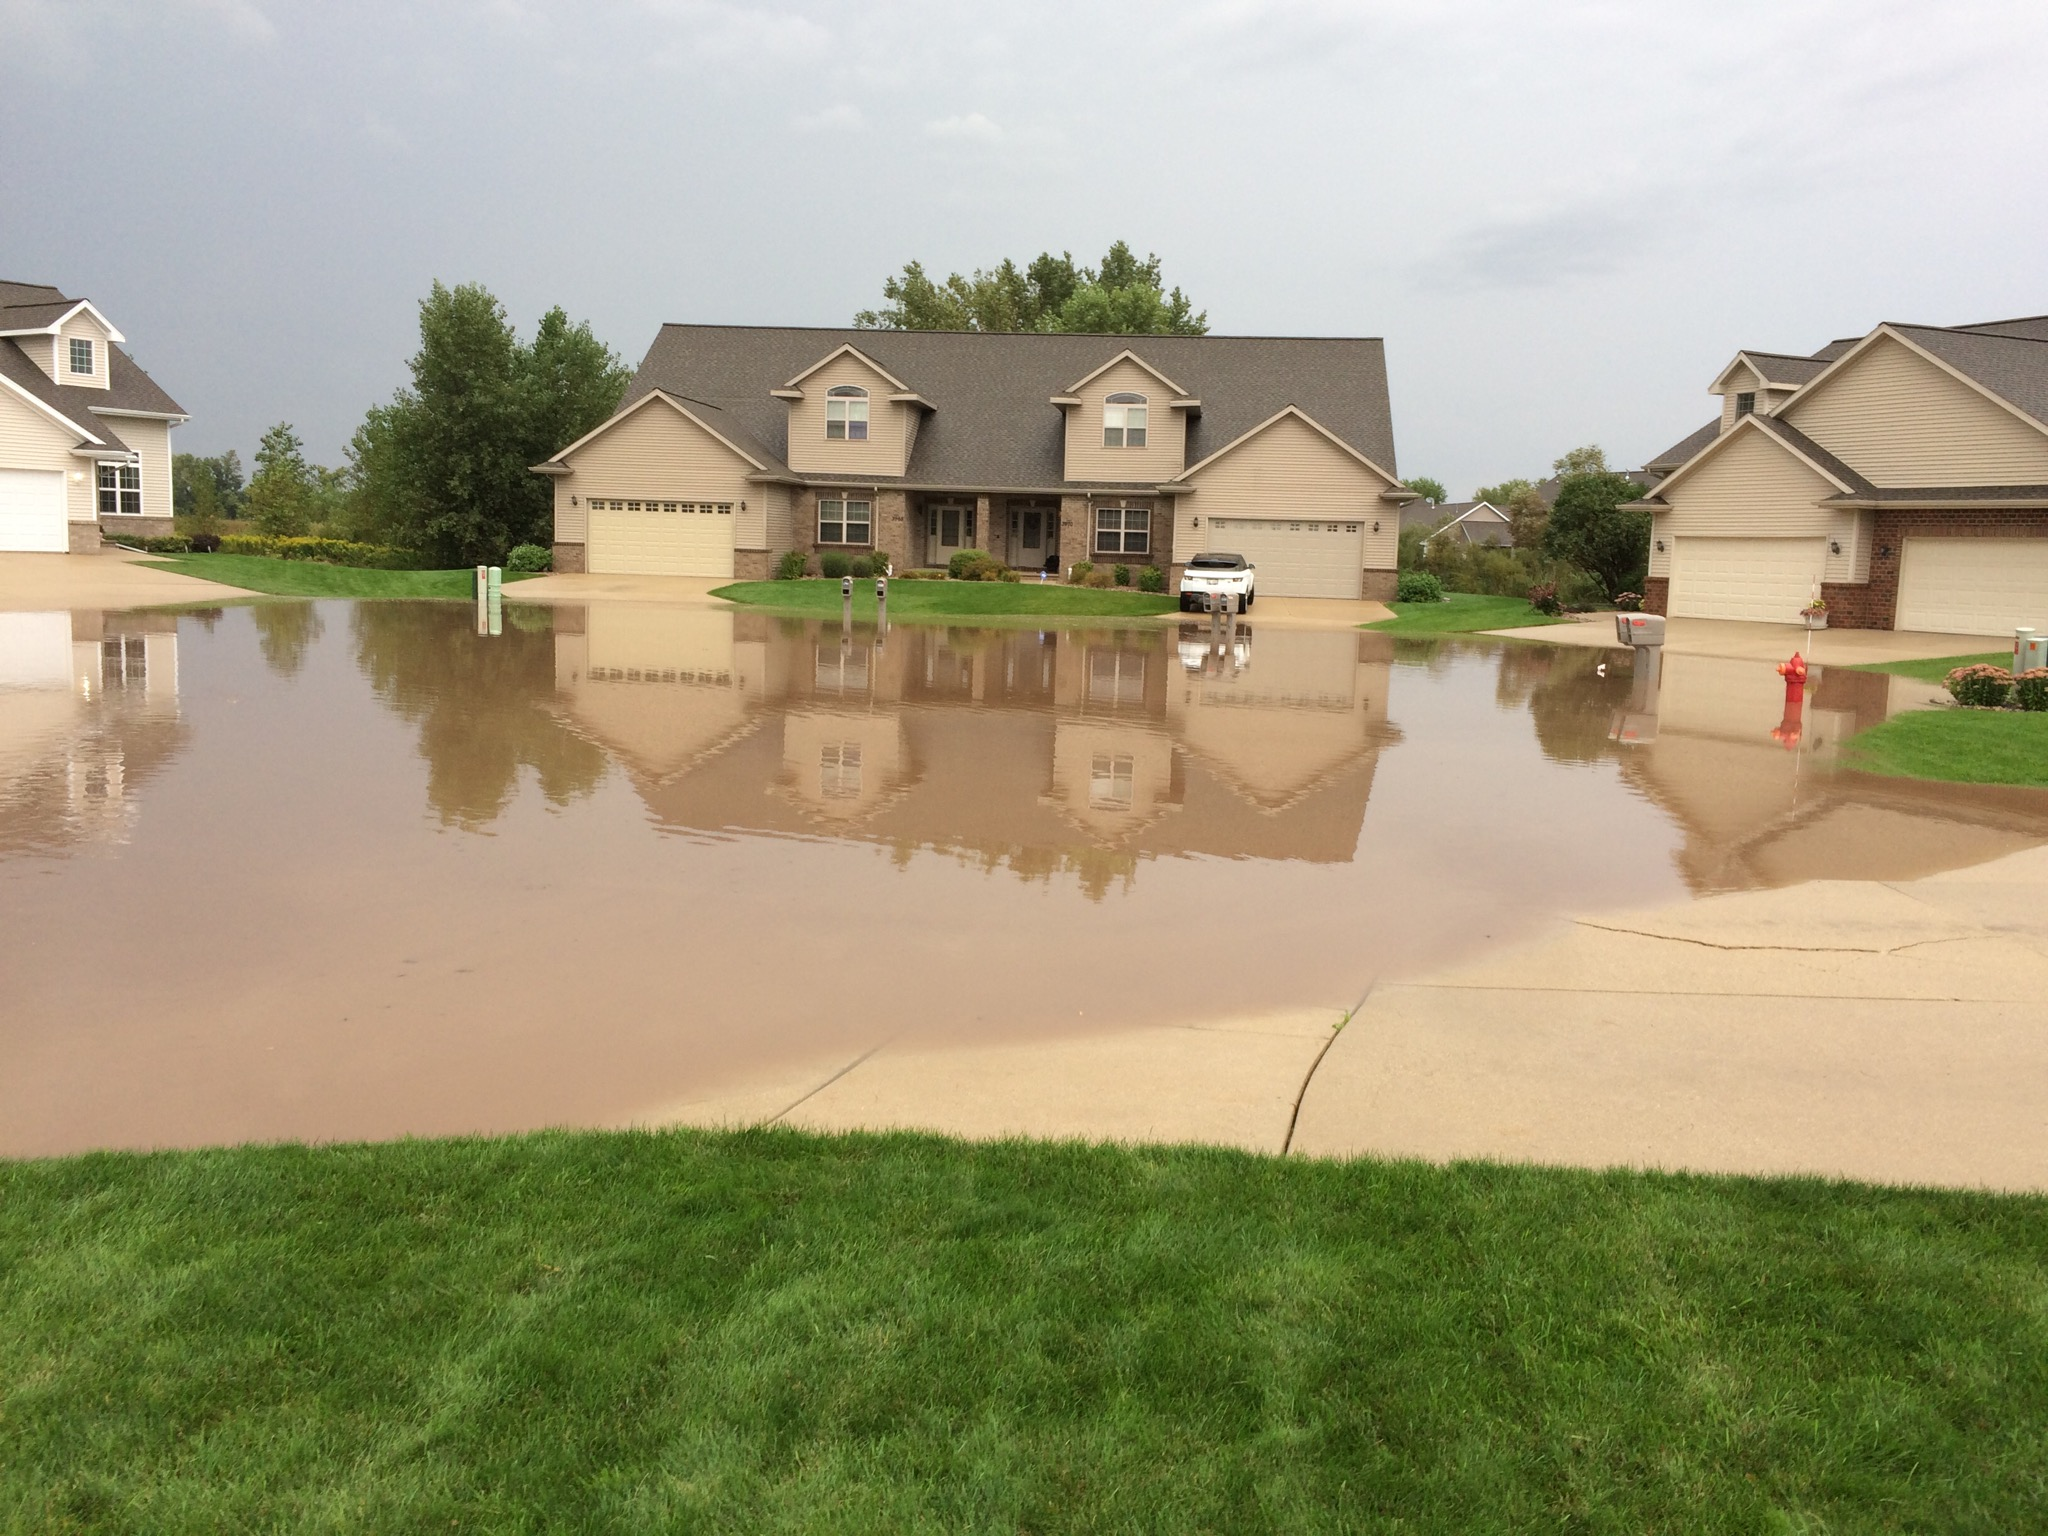 Flooding Expected in 2020 – What can be done to prepare your family & home?